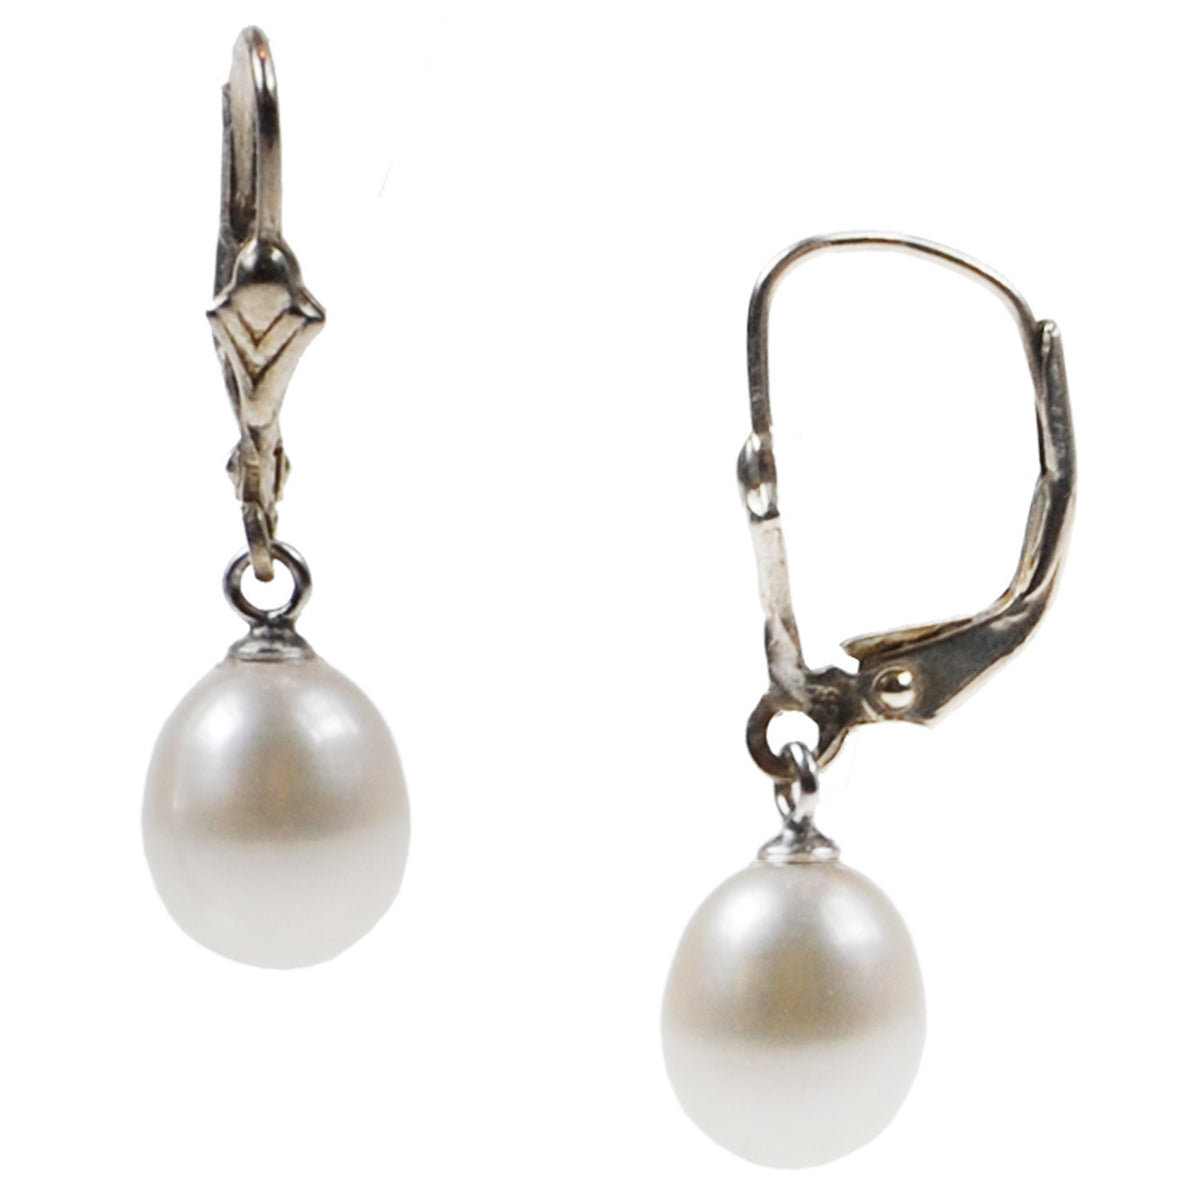 Pearl Drop Earrings on French Fittings